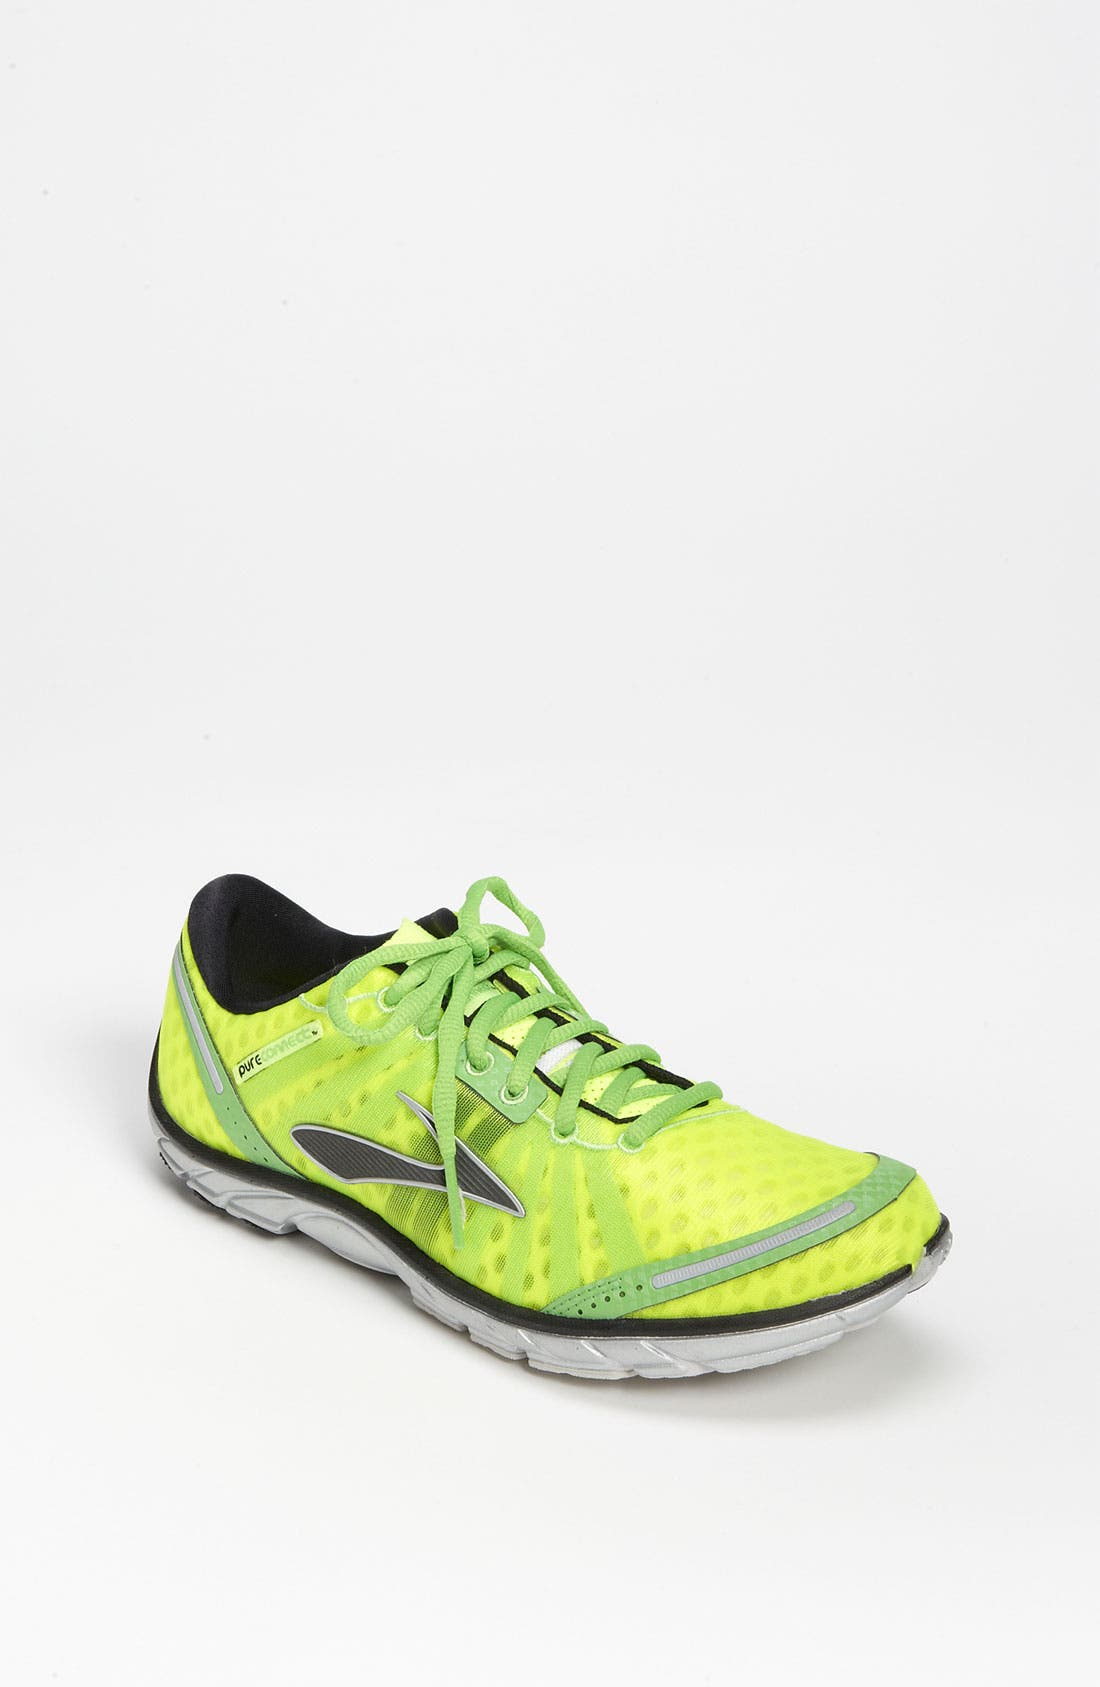 Alternate Image 1 Selected - Brooks 'PureConnect' Running Shoe (Women) (Regular Retail Price: $89.95)